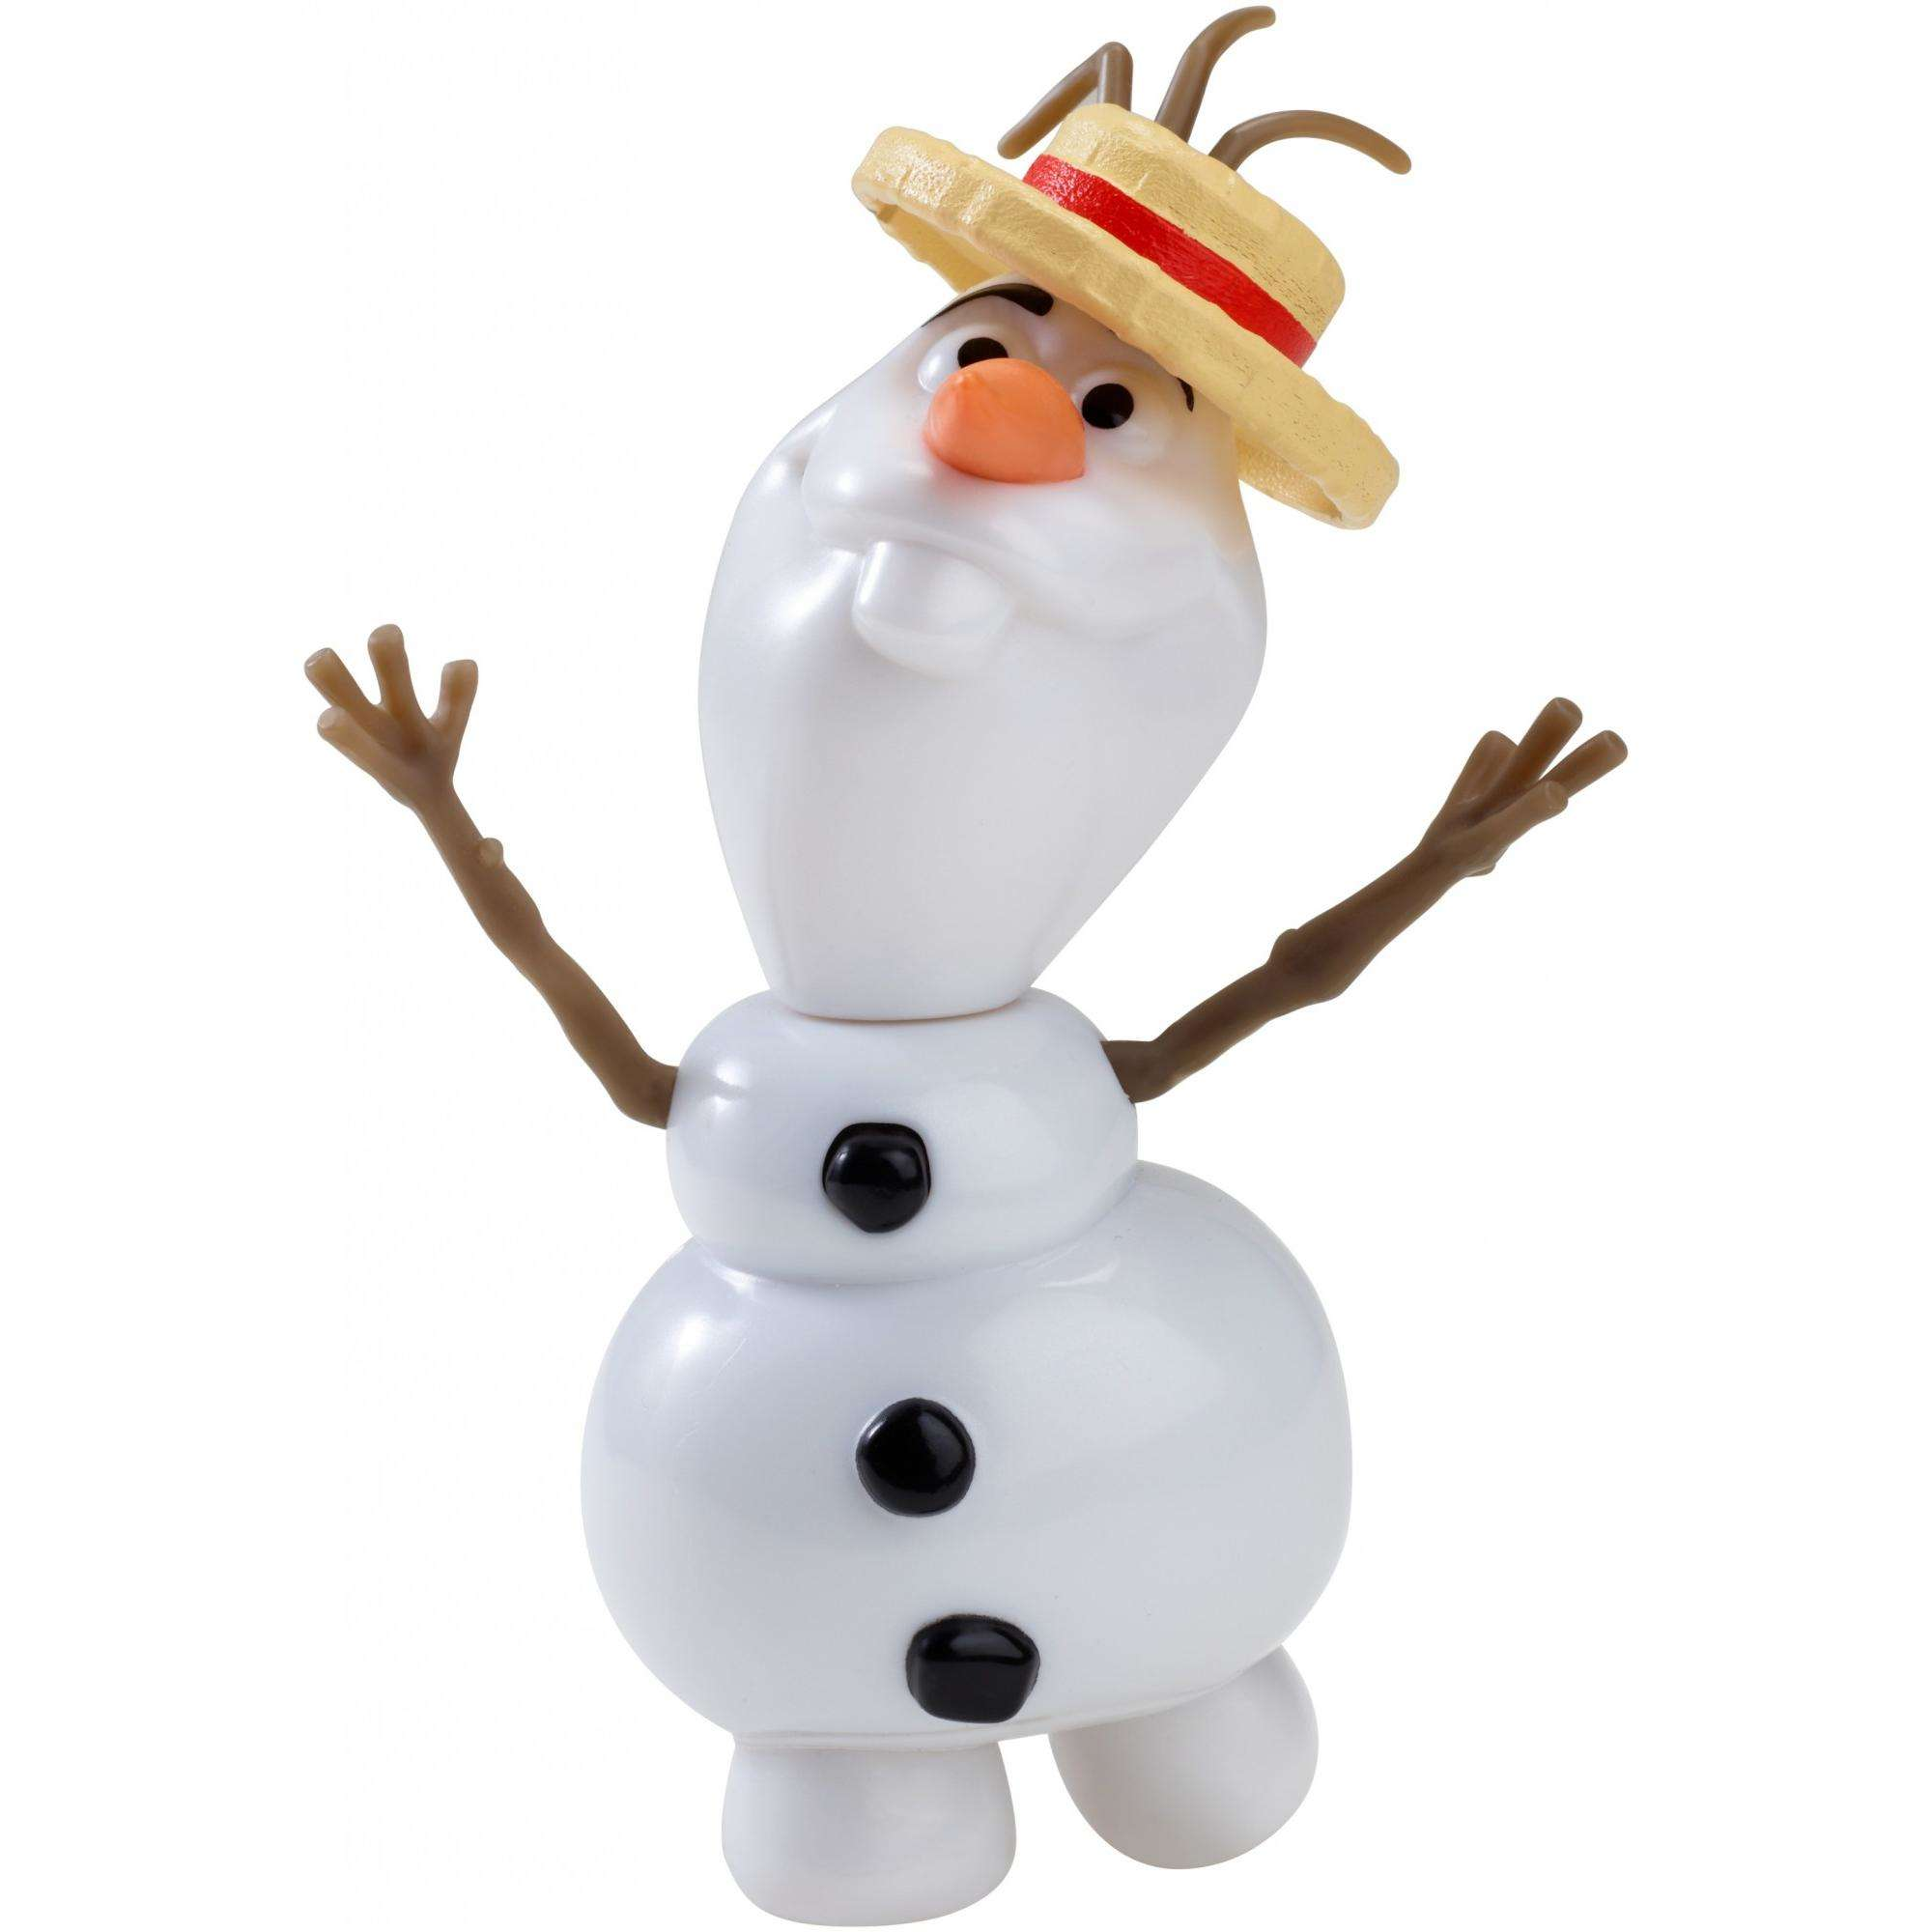 Disney Frozen Summer Singin' Olaf Figure Singing Signature Song